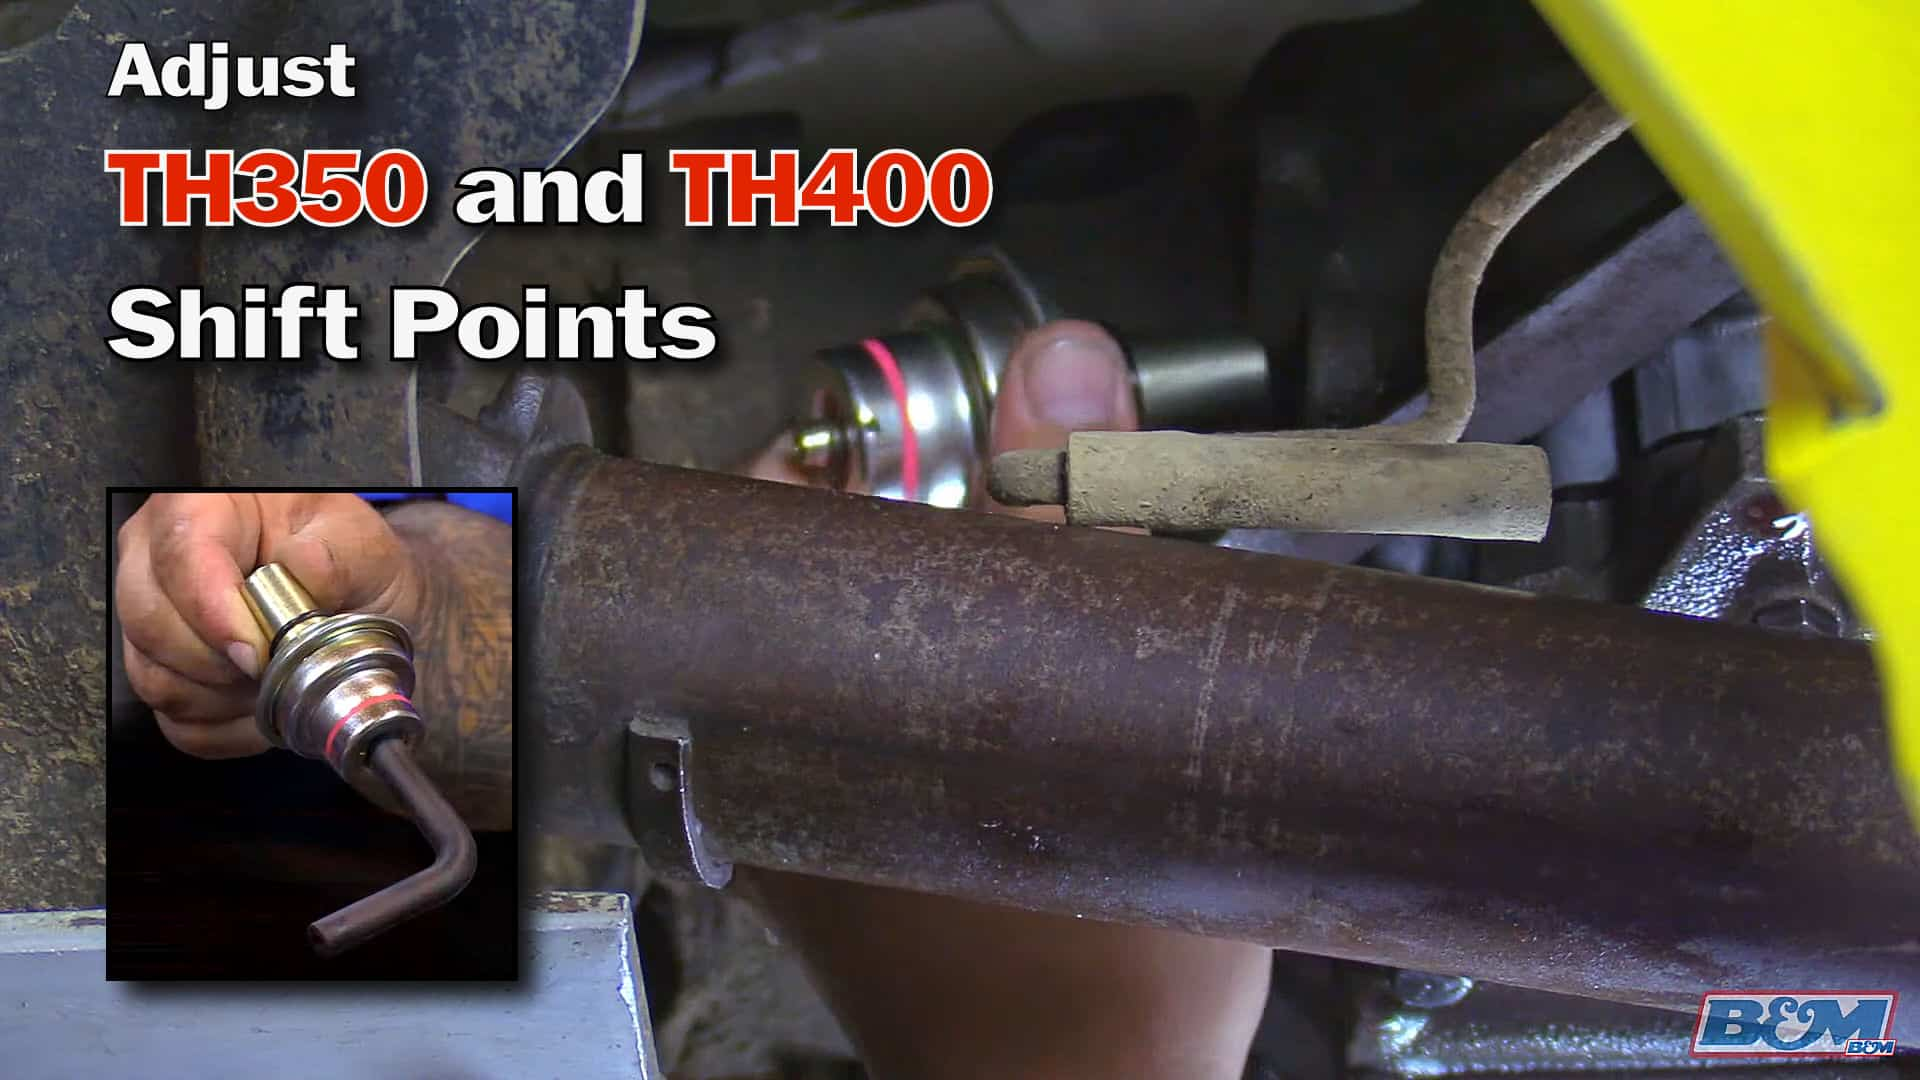 How To Adjust TH350 & TH400 Shift Points with a Vacuum Modulator